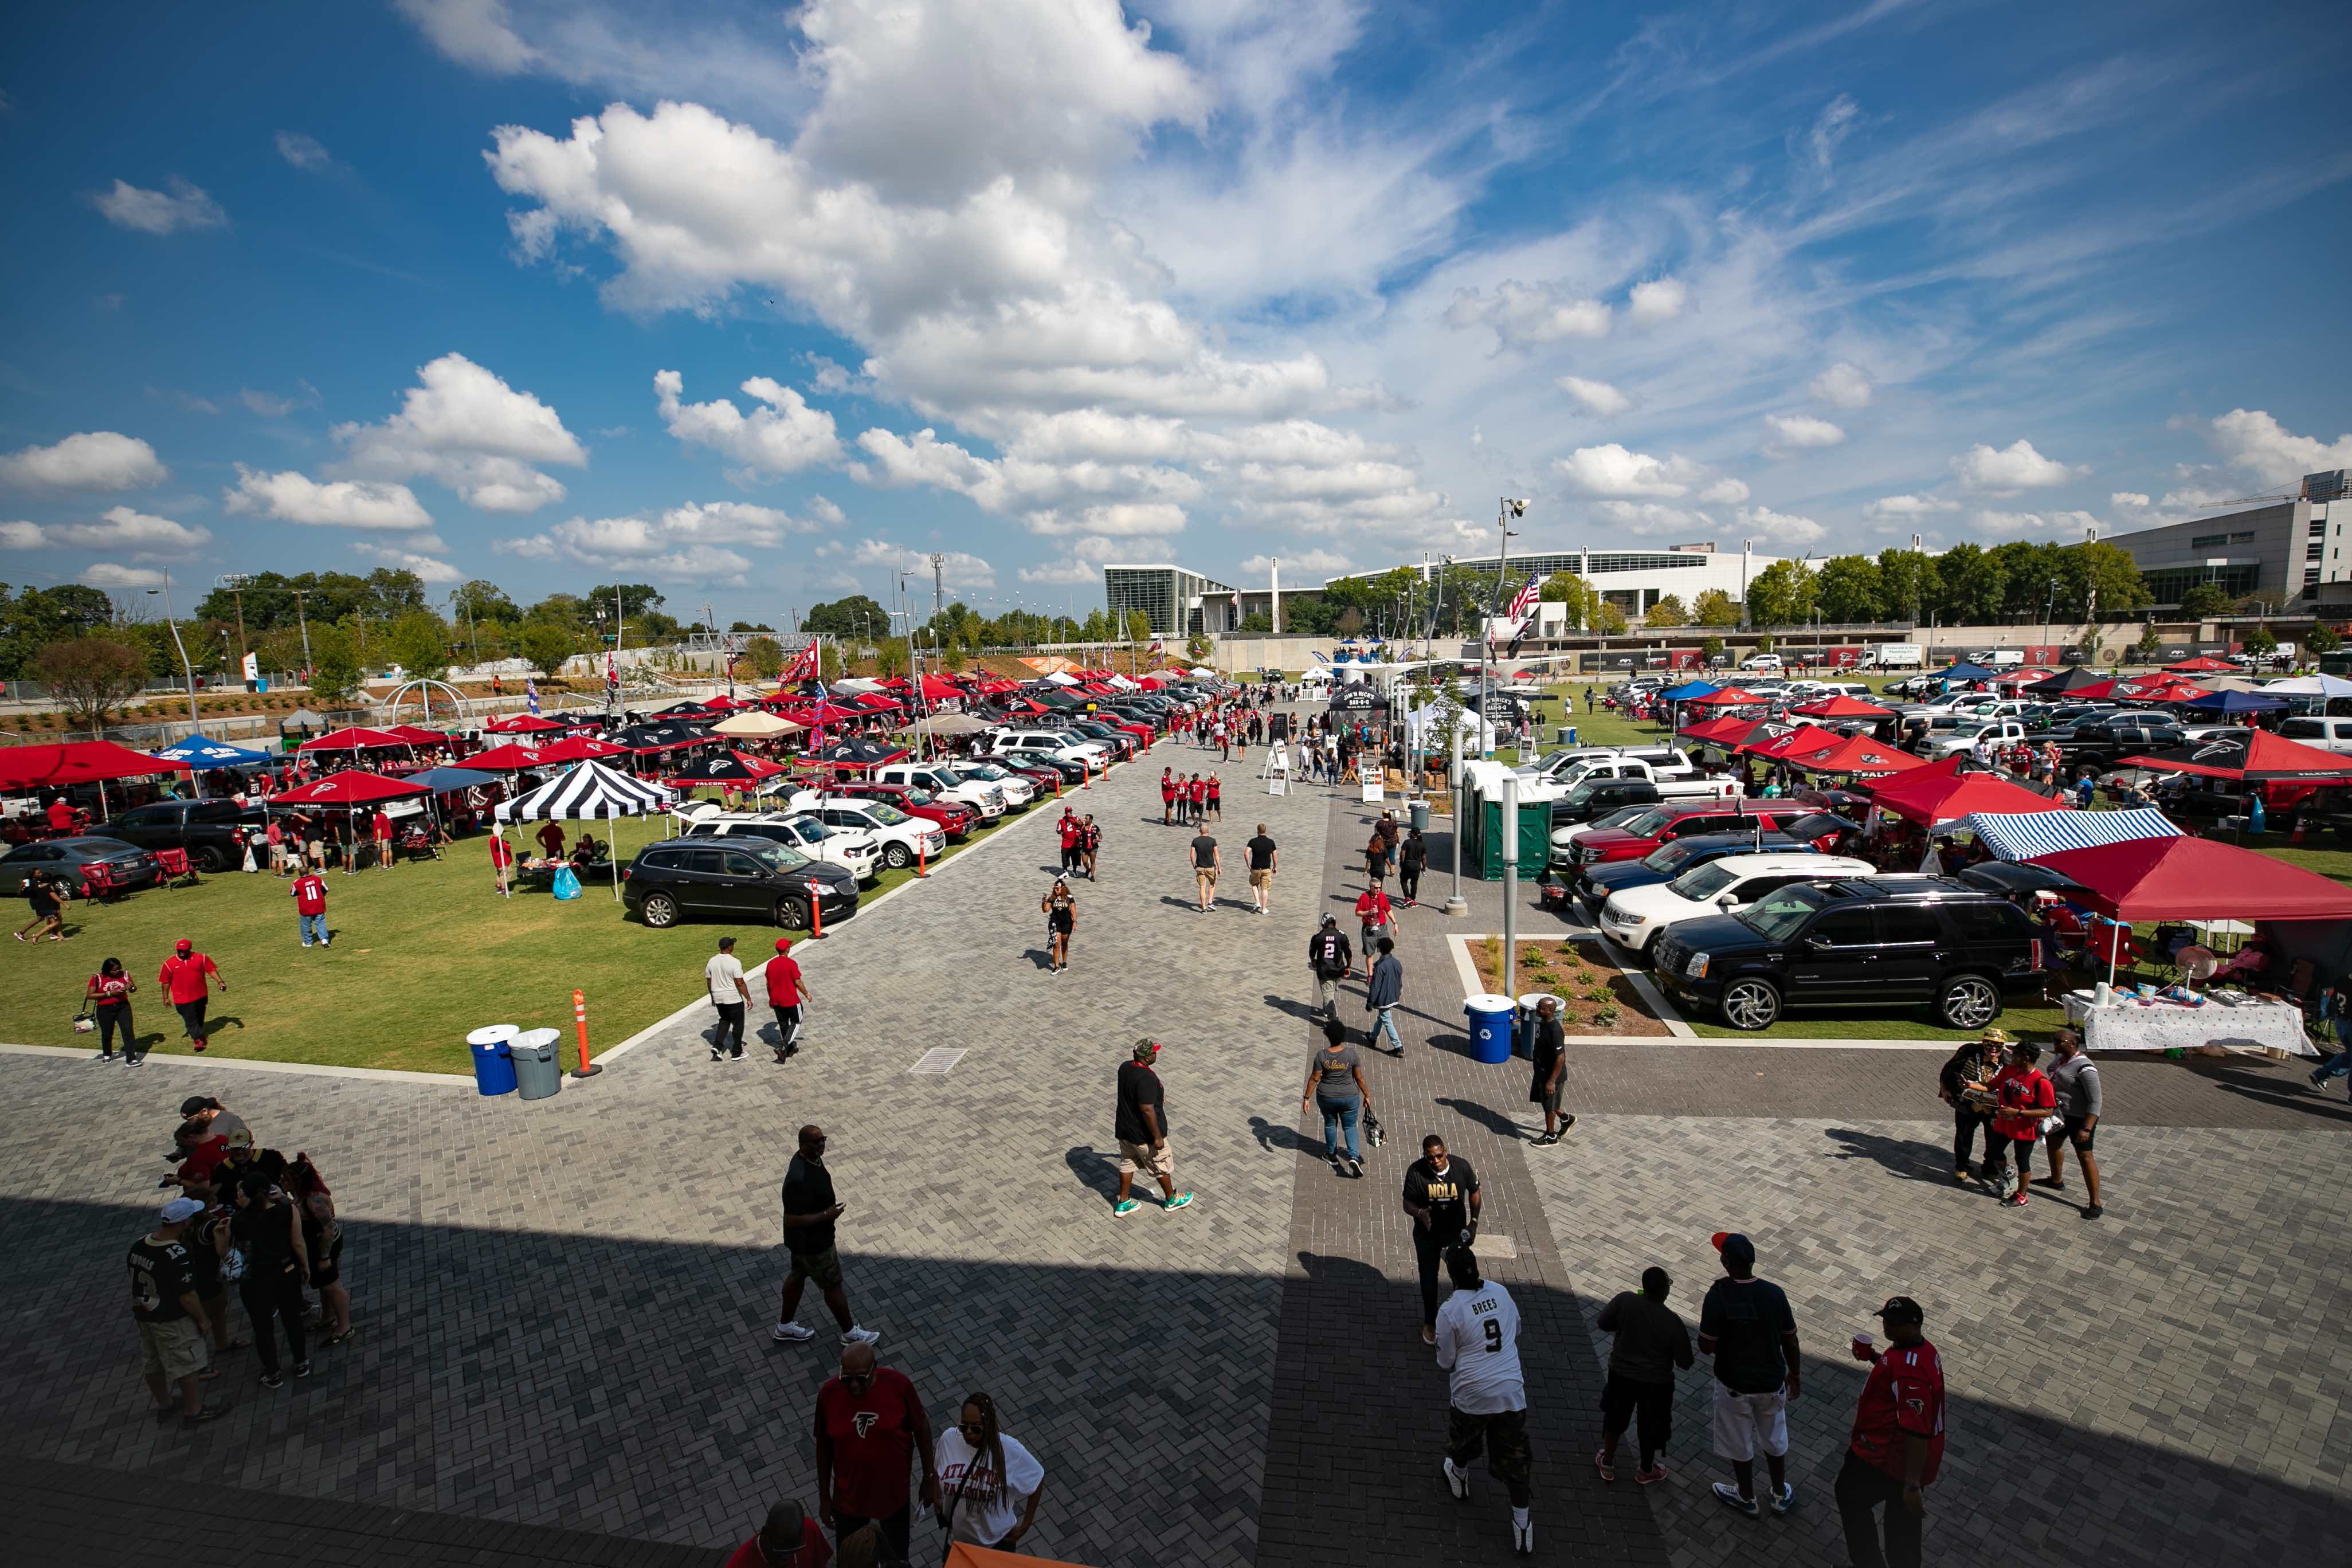 Remarkable Tailgating The Home Depot Backyard Mercedes Benz Stadium Download Free Architecture Designs Scobabritishbridgeorg